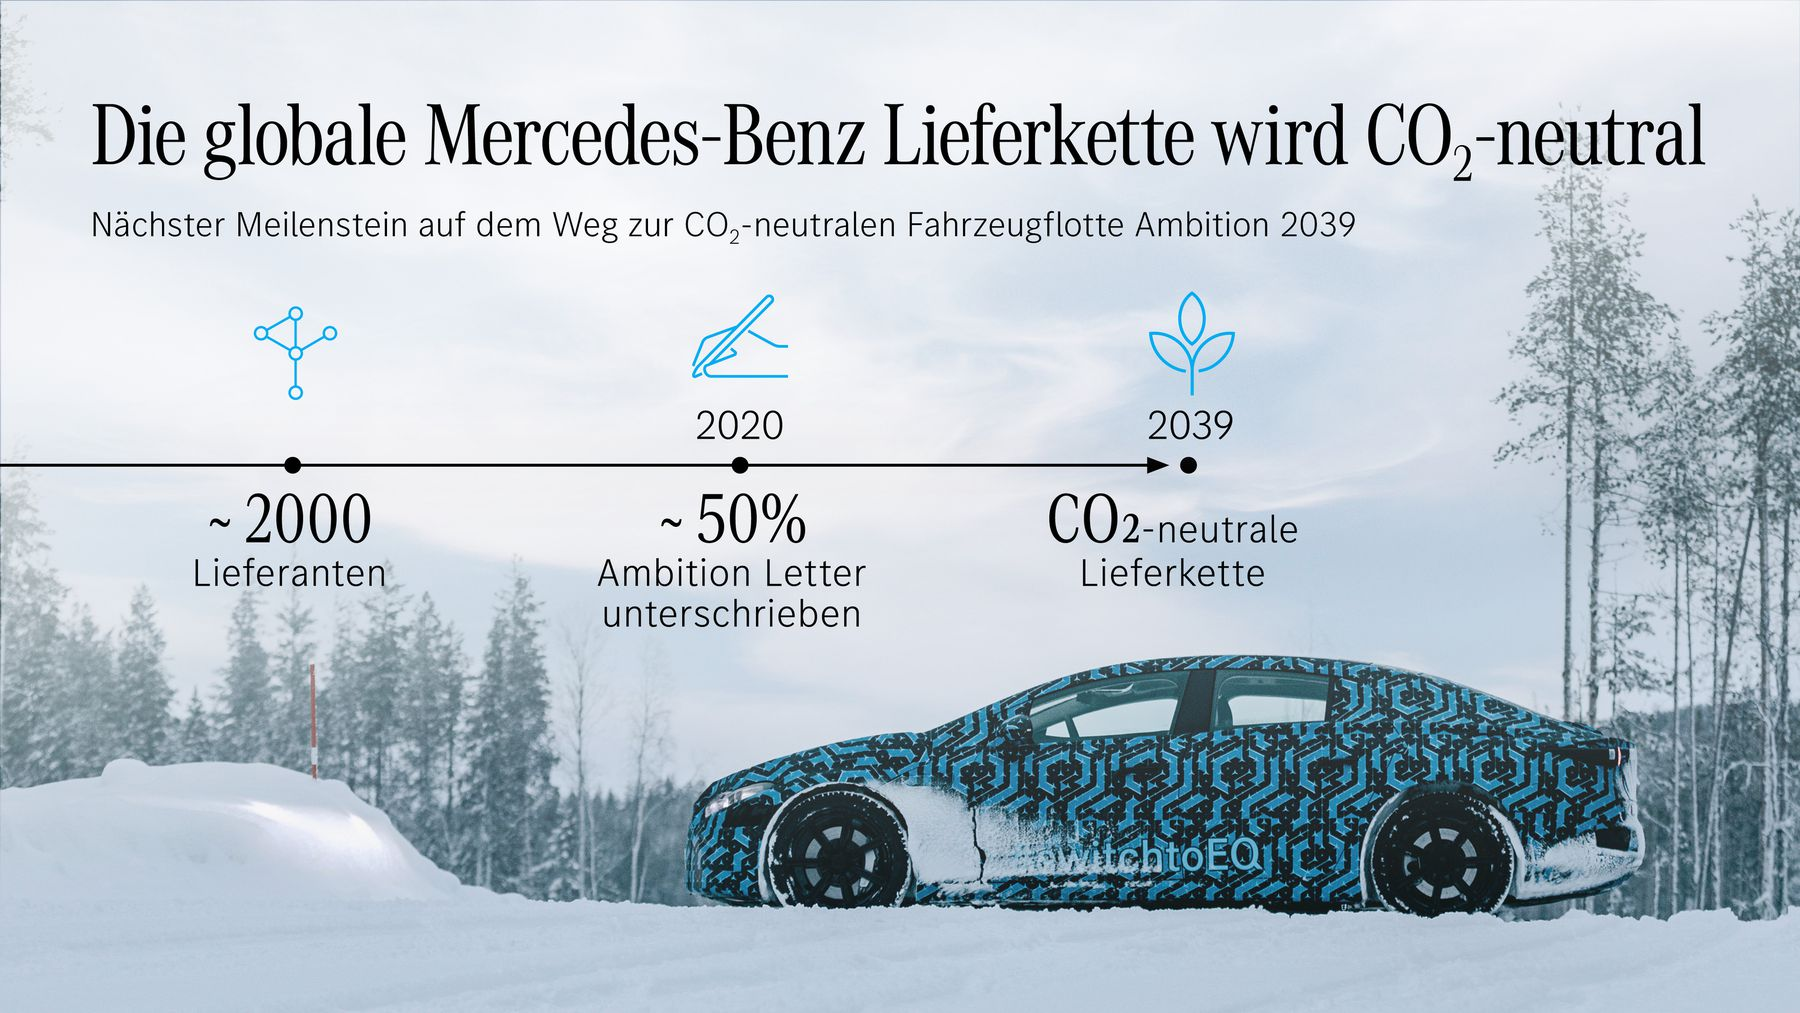 Mercedes-Benz to switch to full electric vehicle production in 2039